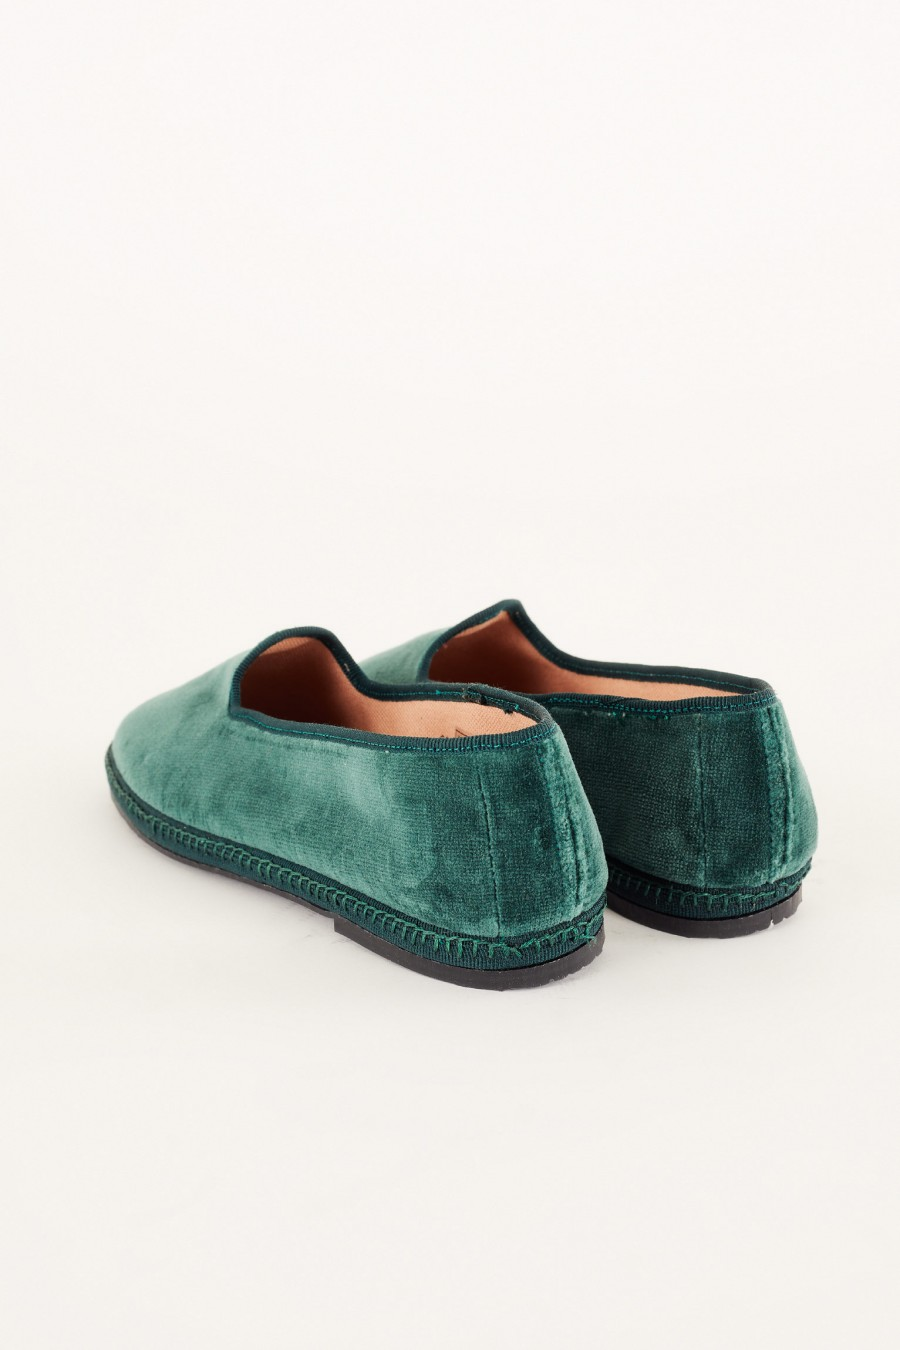 hand-sewn cotton velvet friulane shoe slippers